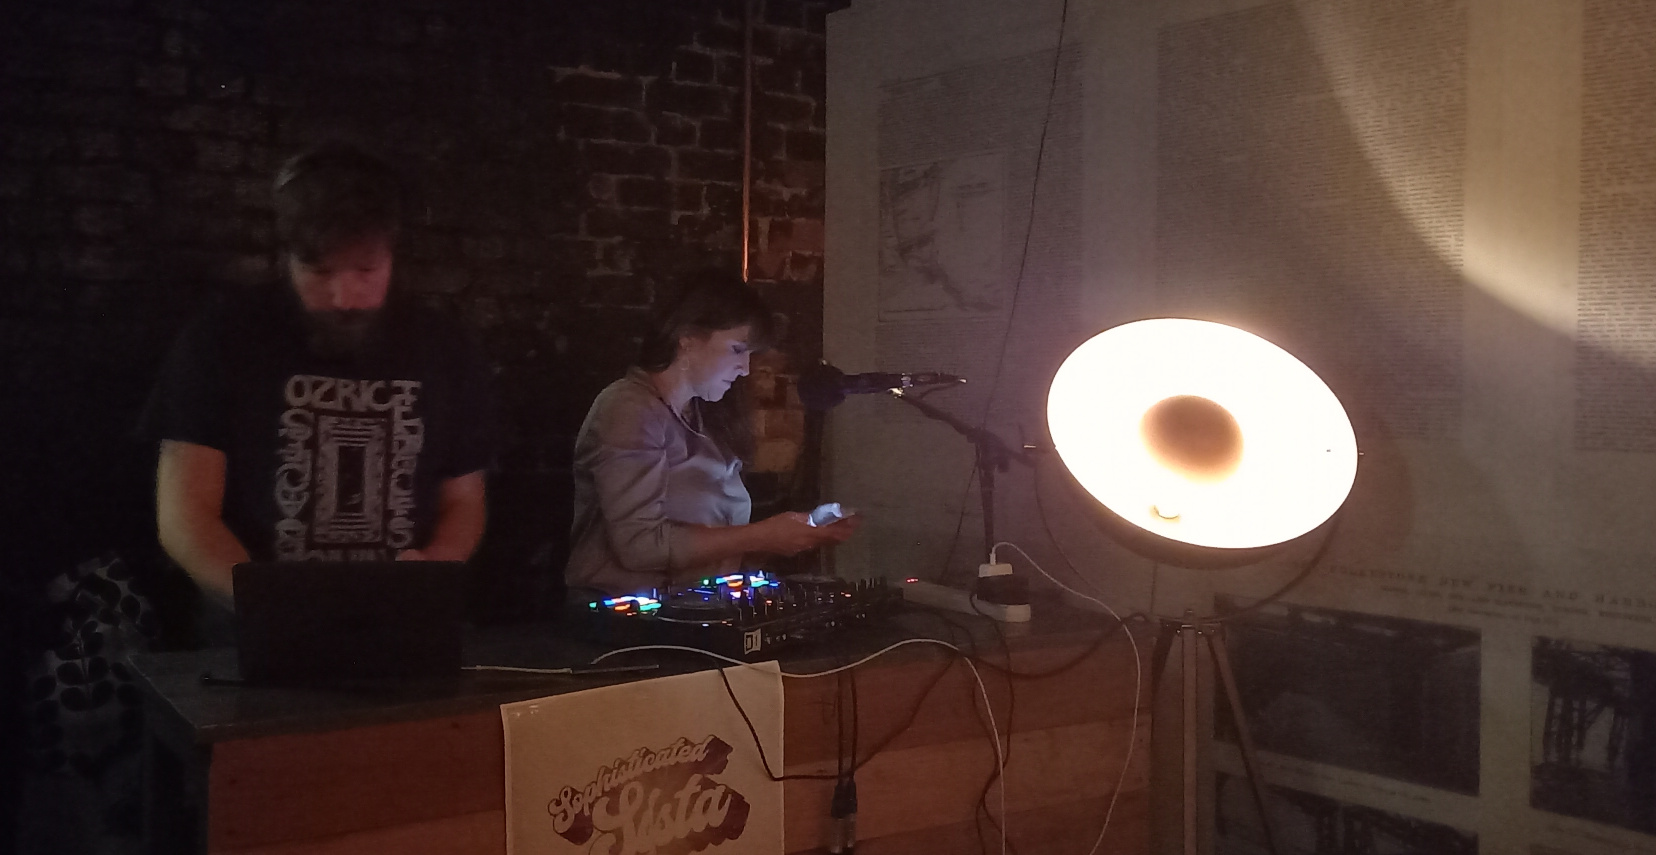 Lizzie D DJing at The Waiting Room